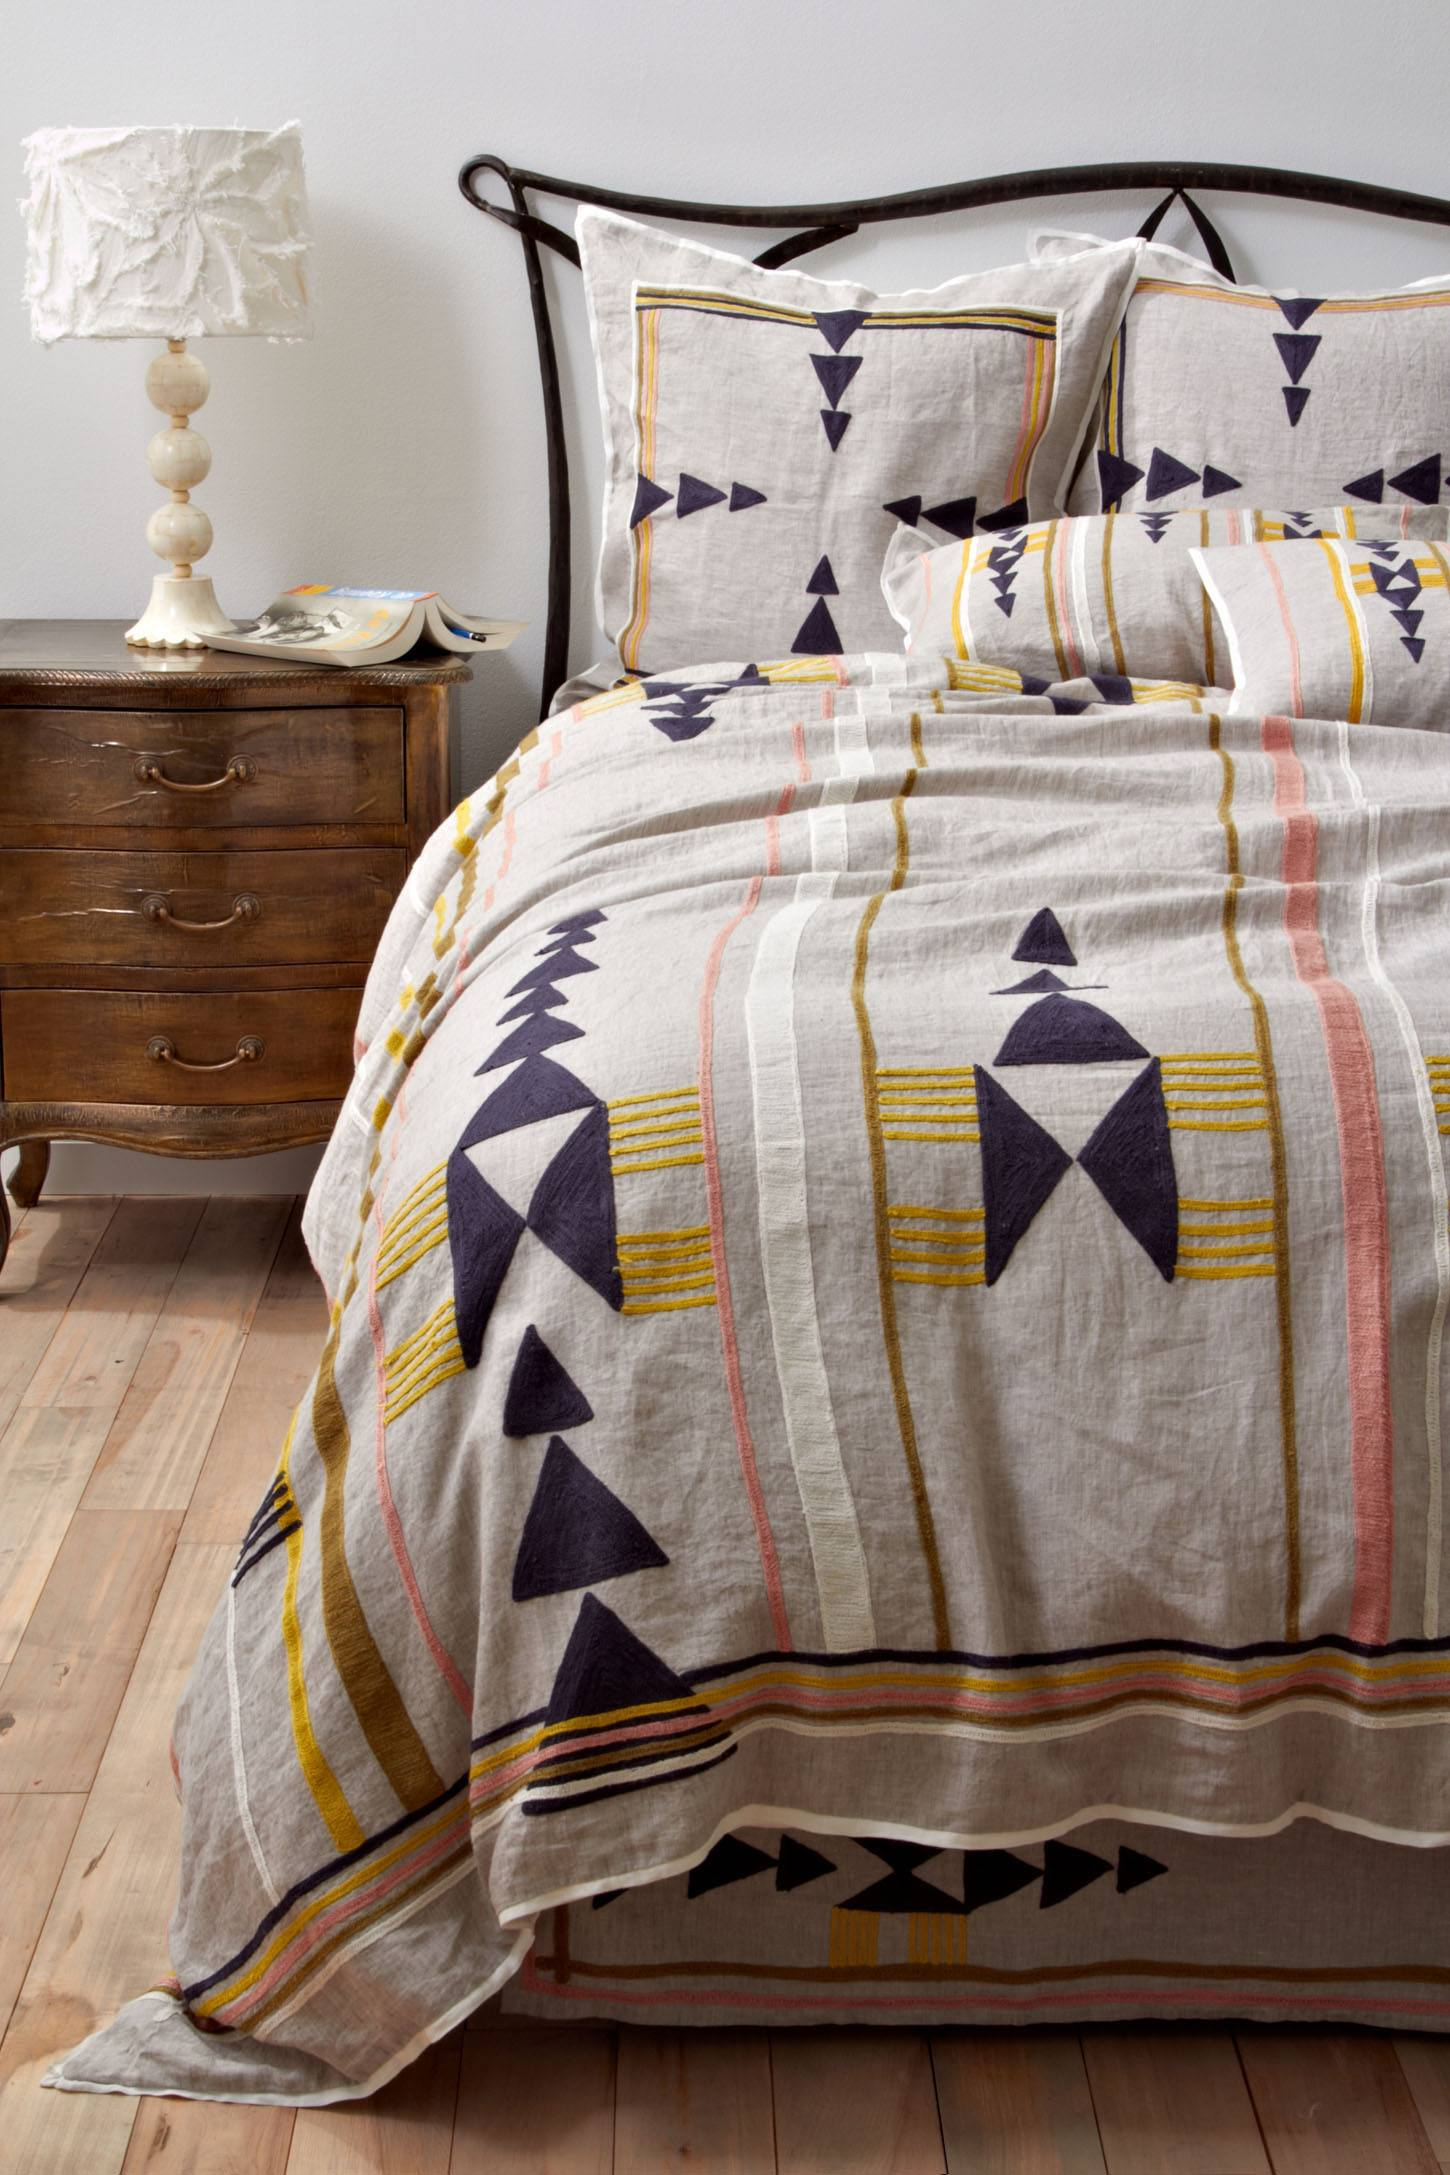 Anthropologie bedding - Anthropologie Bedding 3